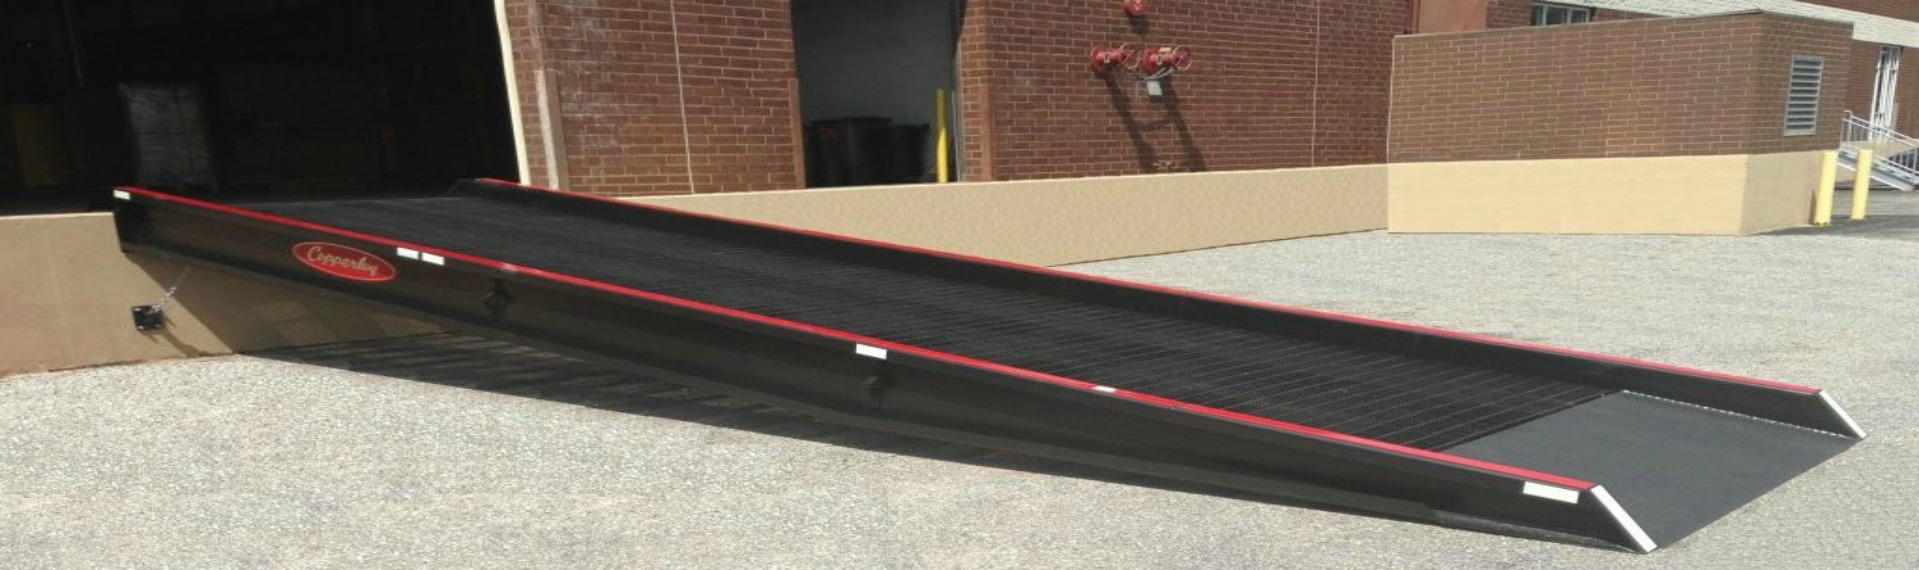 Dock to Ground Ramps from Copperloy®